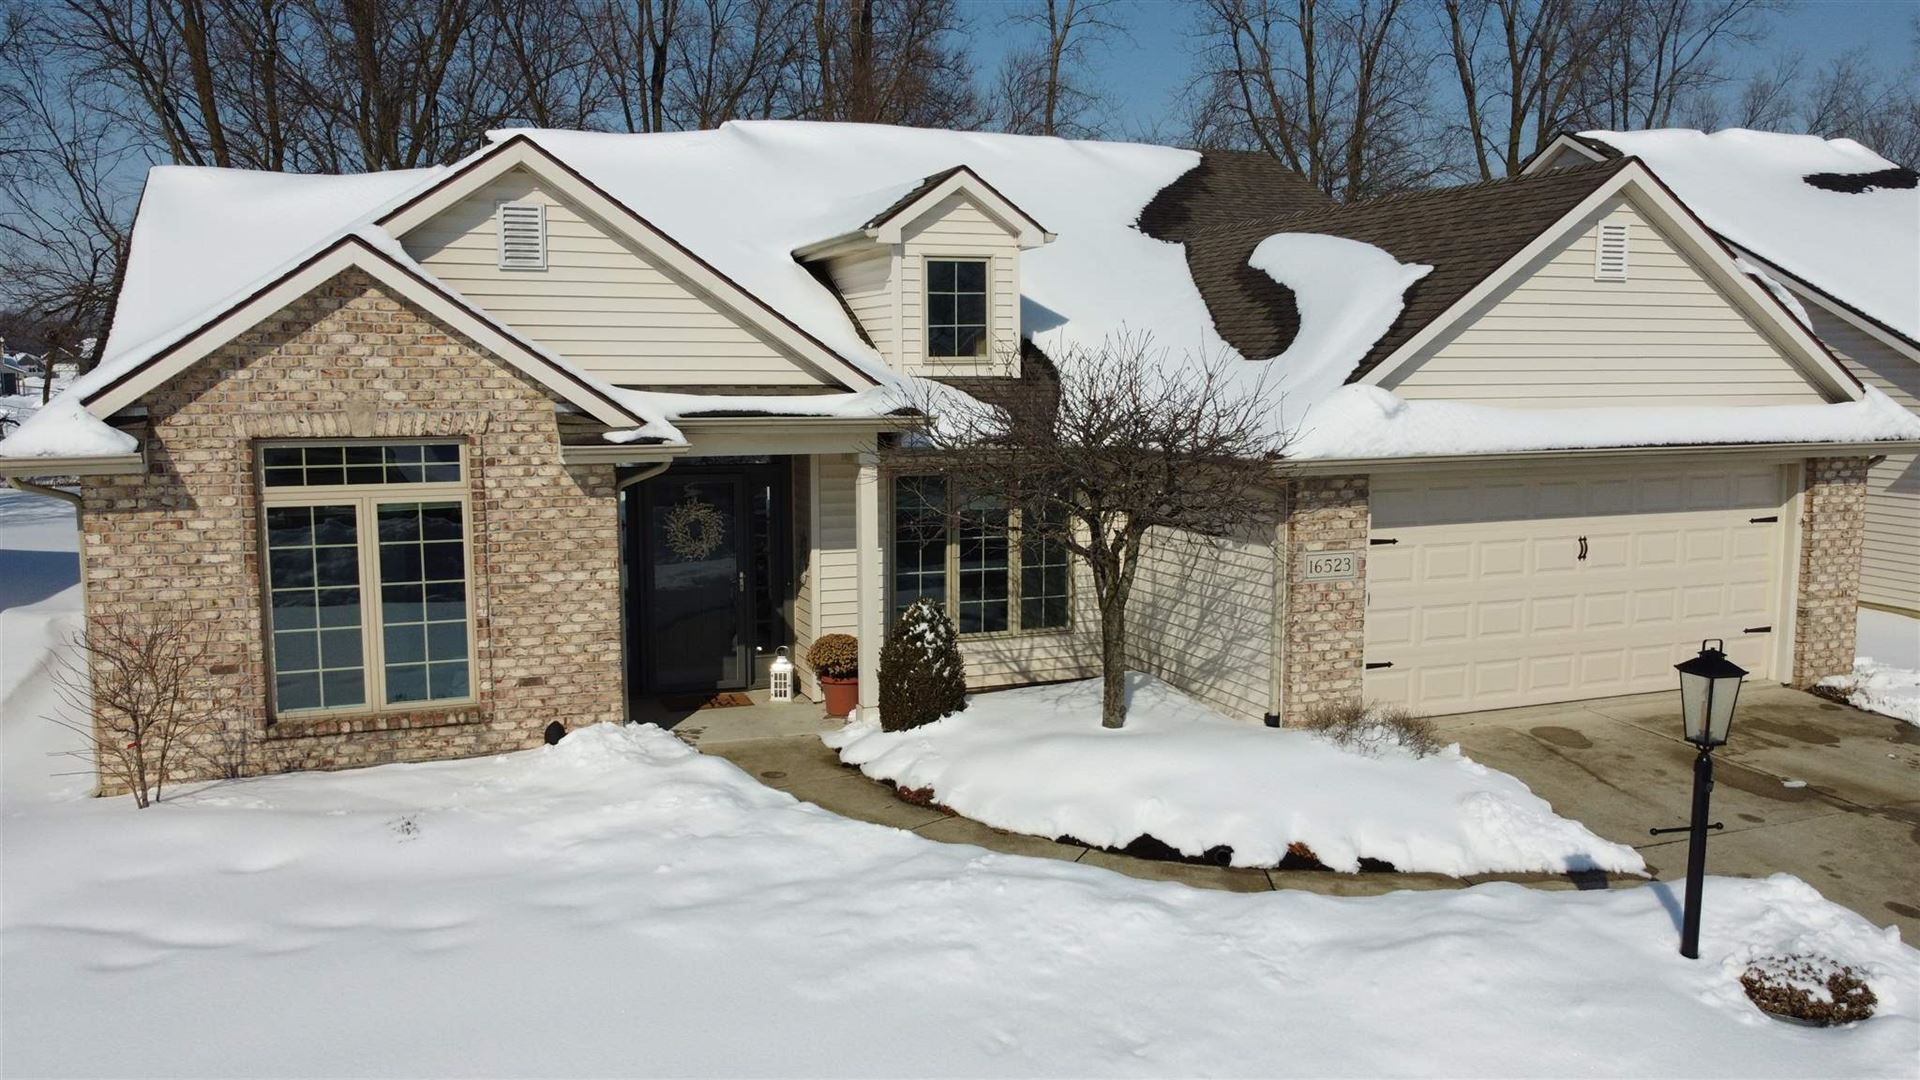 16523 Claystone Court, Fort Wayne, IN 46845 - #: 202105329